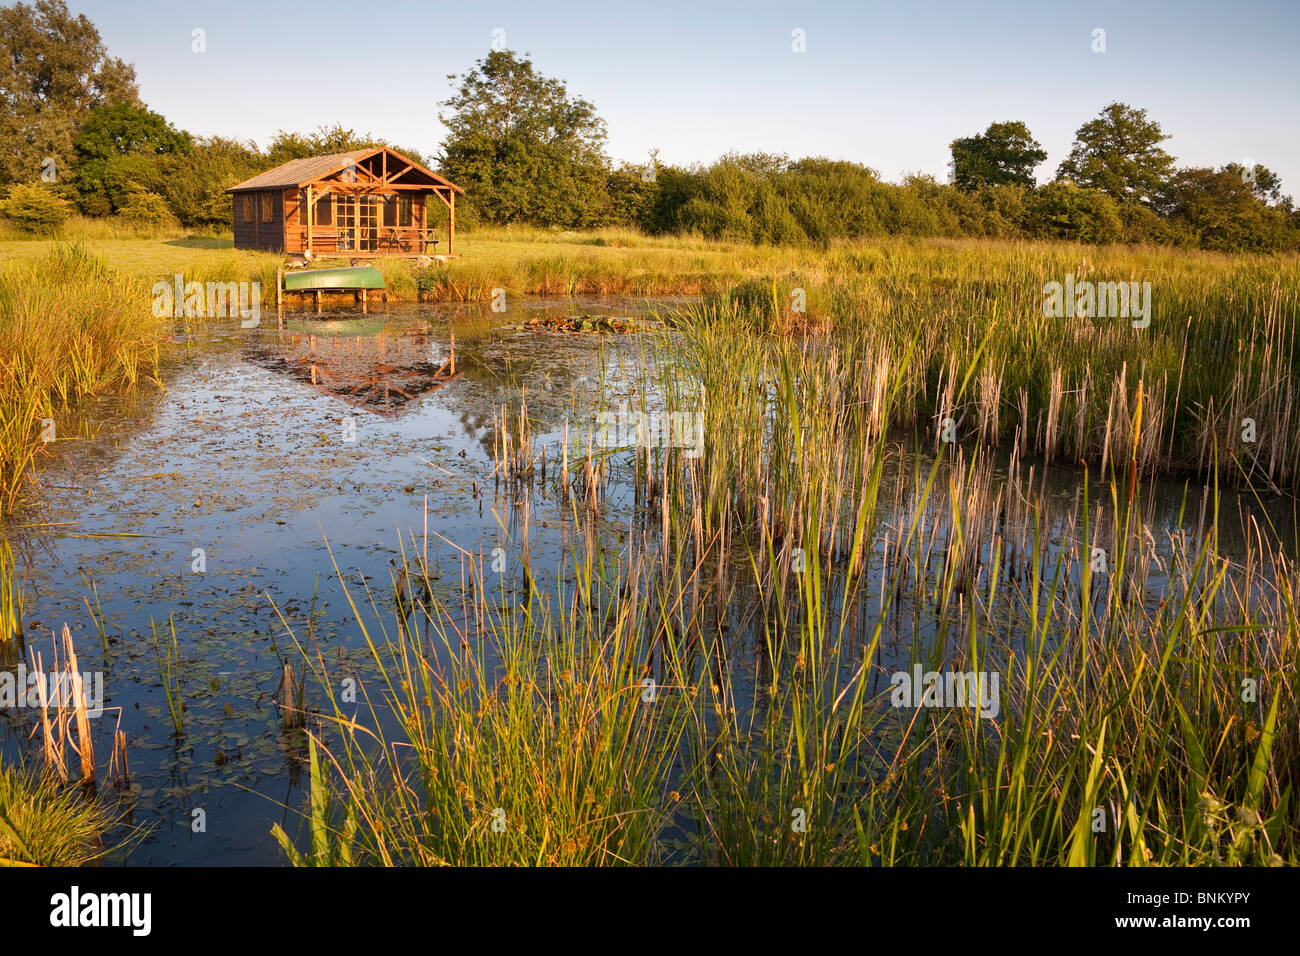 Large pond and summerhouse in the countryside, Wiltshire, England - Stock Image